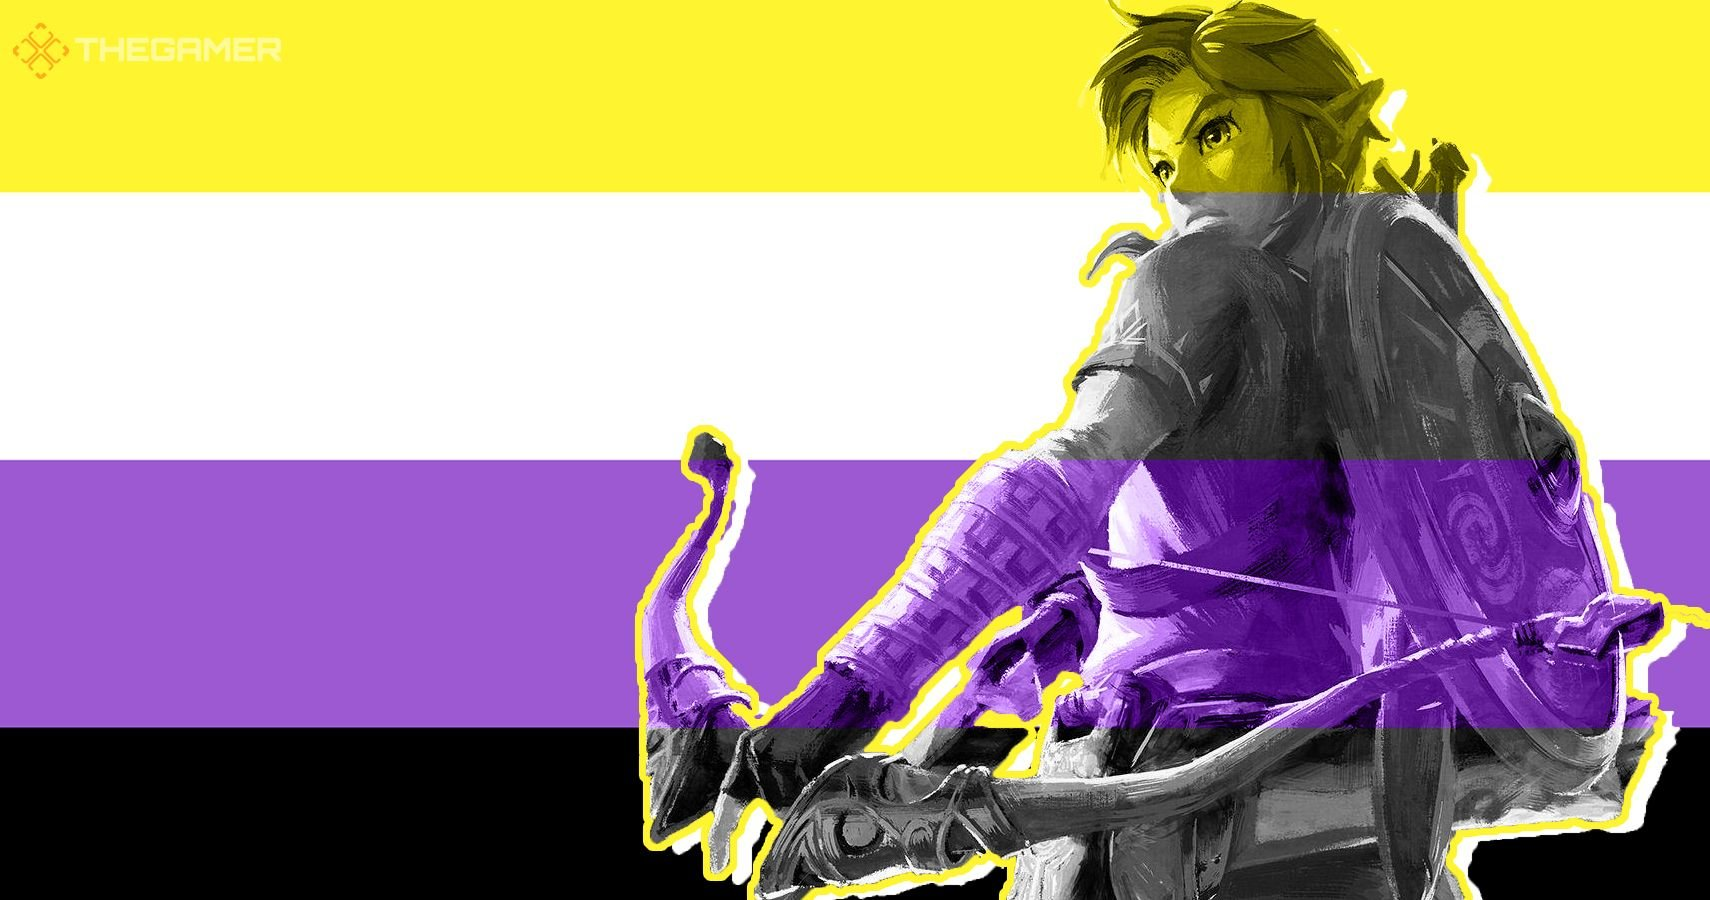 Why Breath Of The Wild's Link Is A Gender Neutral Icon